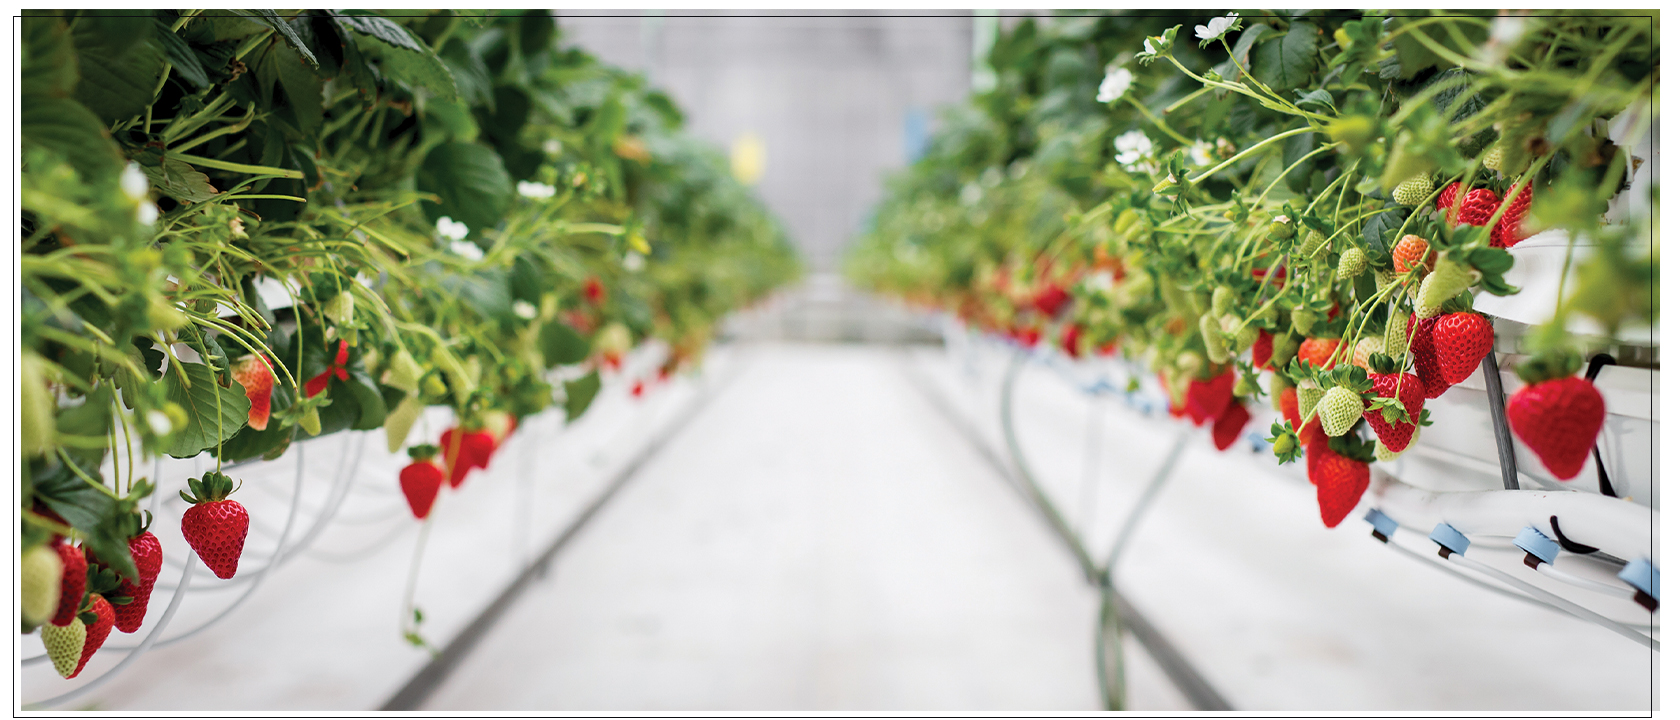 DelFrescoPure® greenhouse grown strawberries